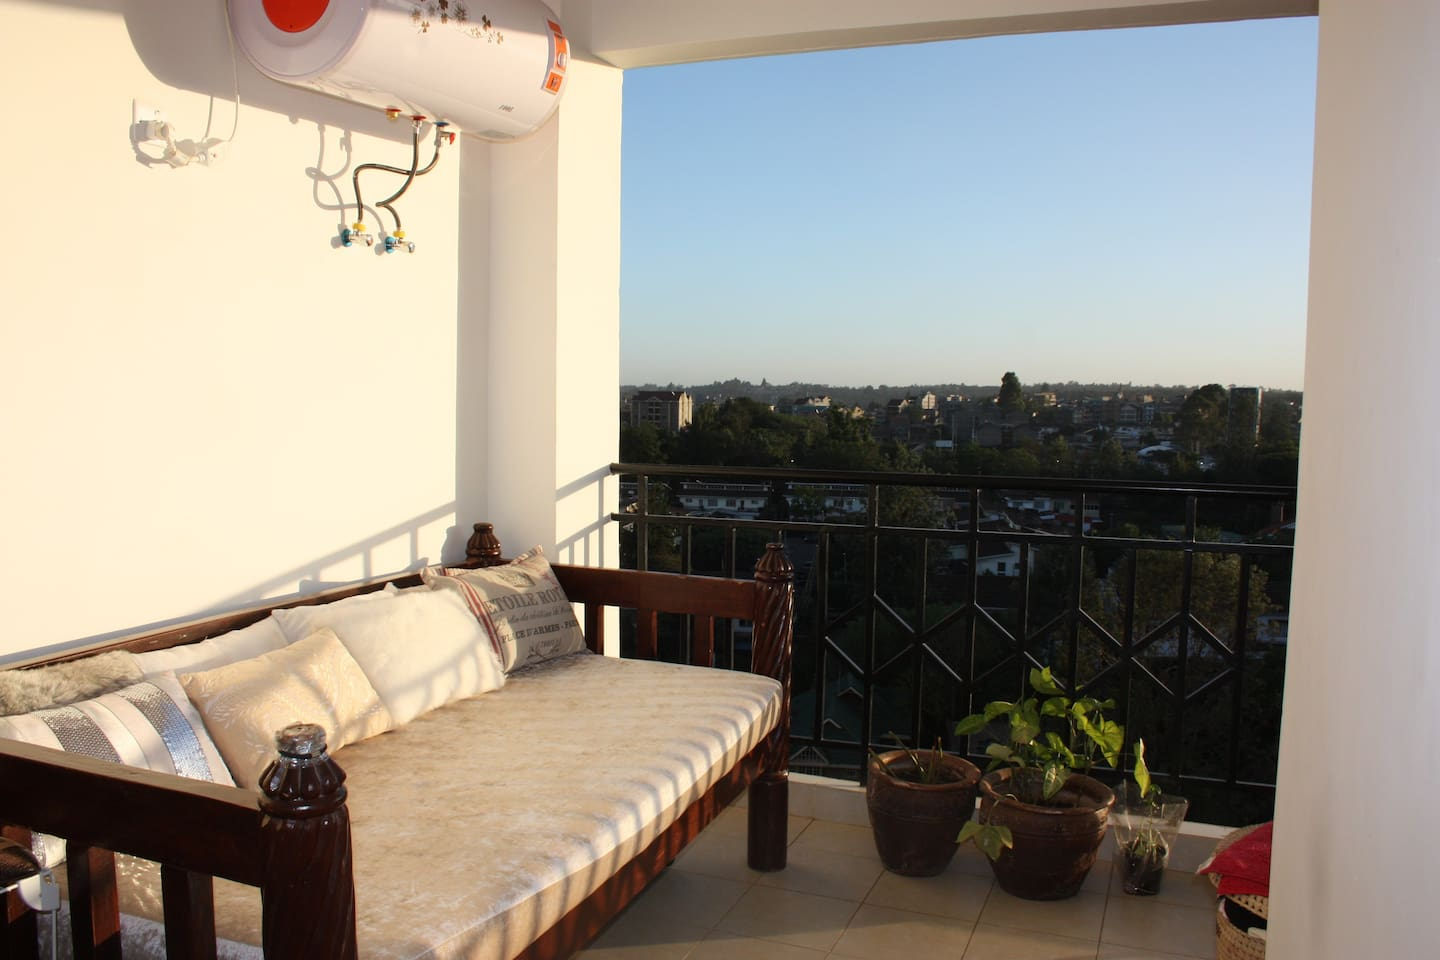 Apartment on Riara Rd with a nice view